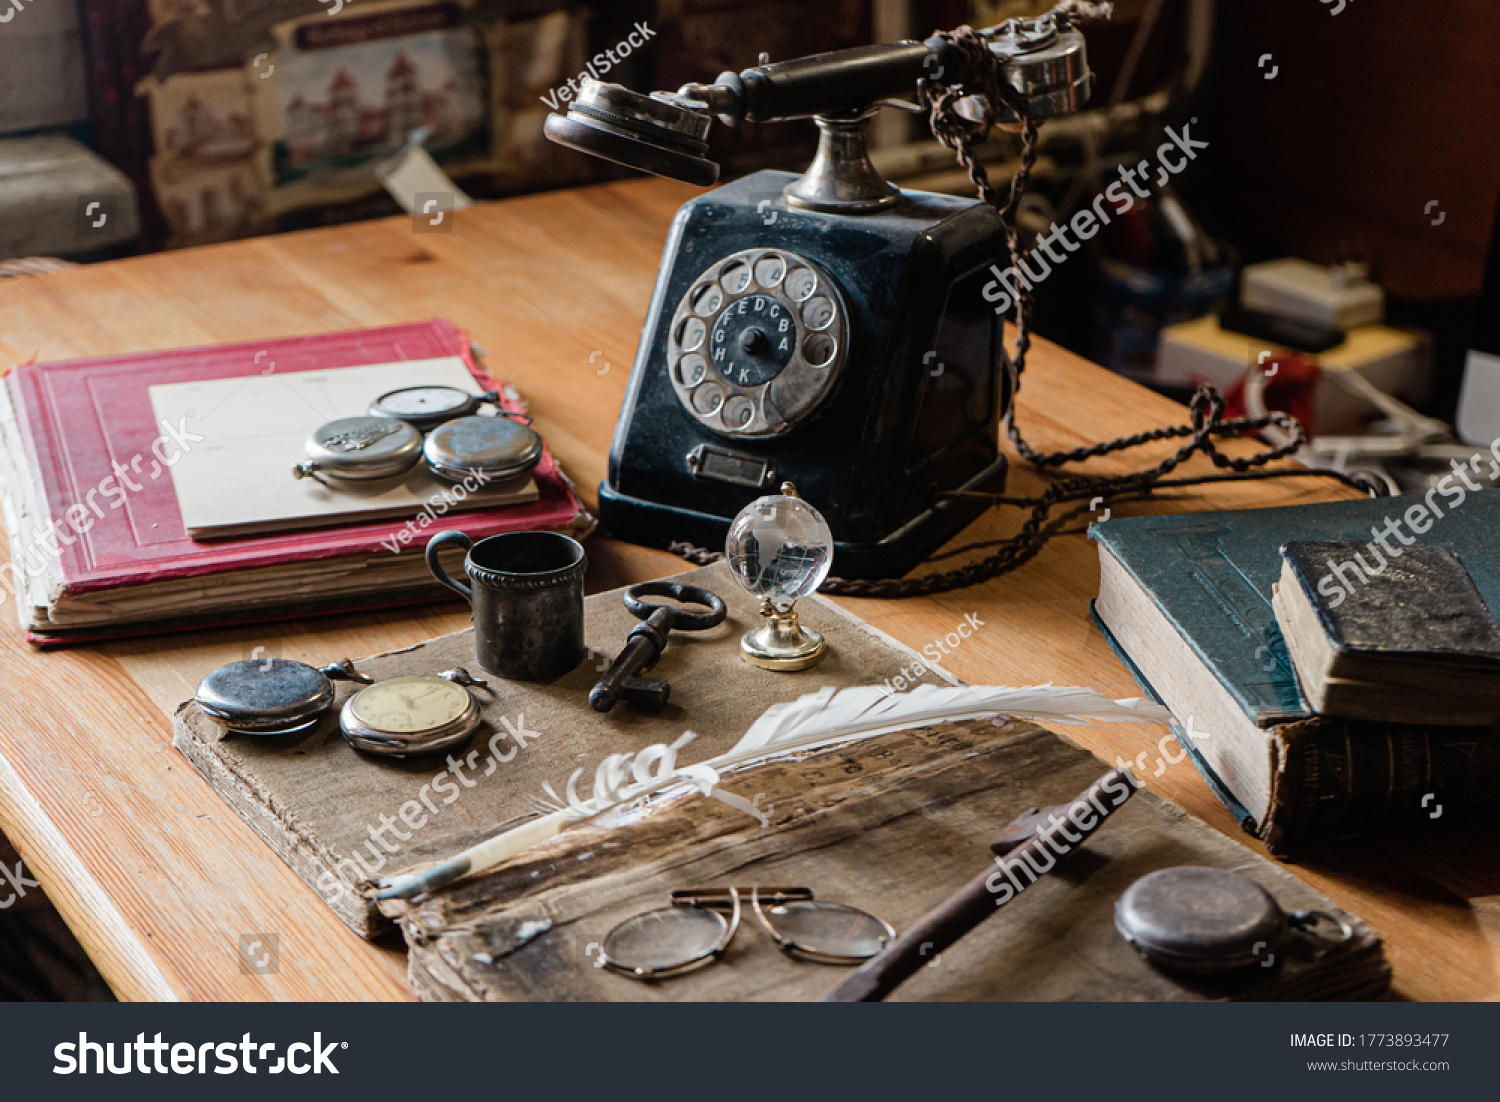 antique desk with accessories: old telephone, books, globe, notes, ink pen, old glasses. and for hours. The picture conveys the atmosphere of antiquity - past years #1773893477